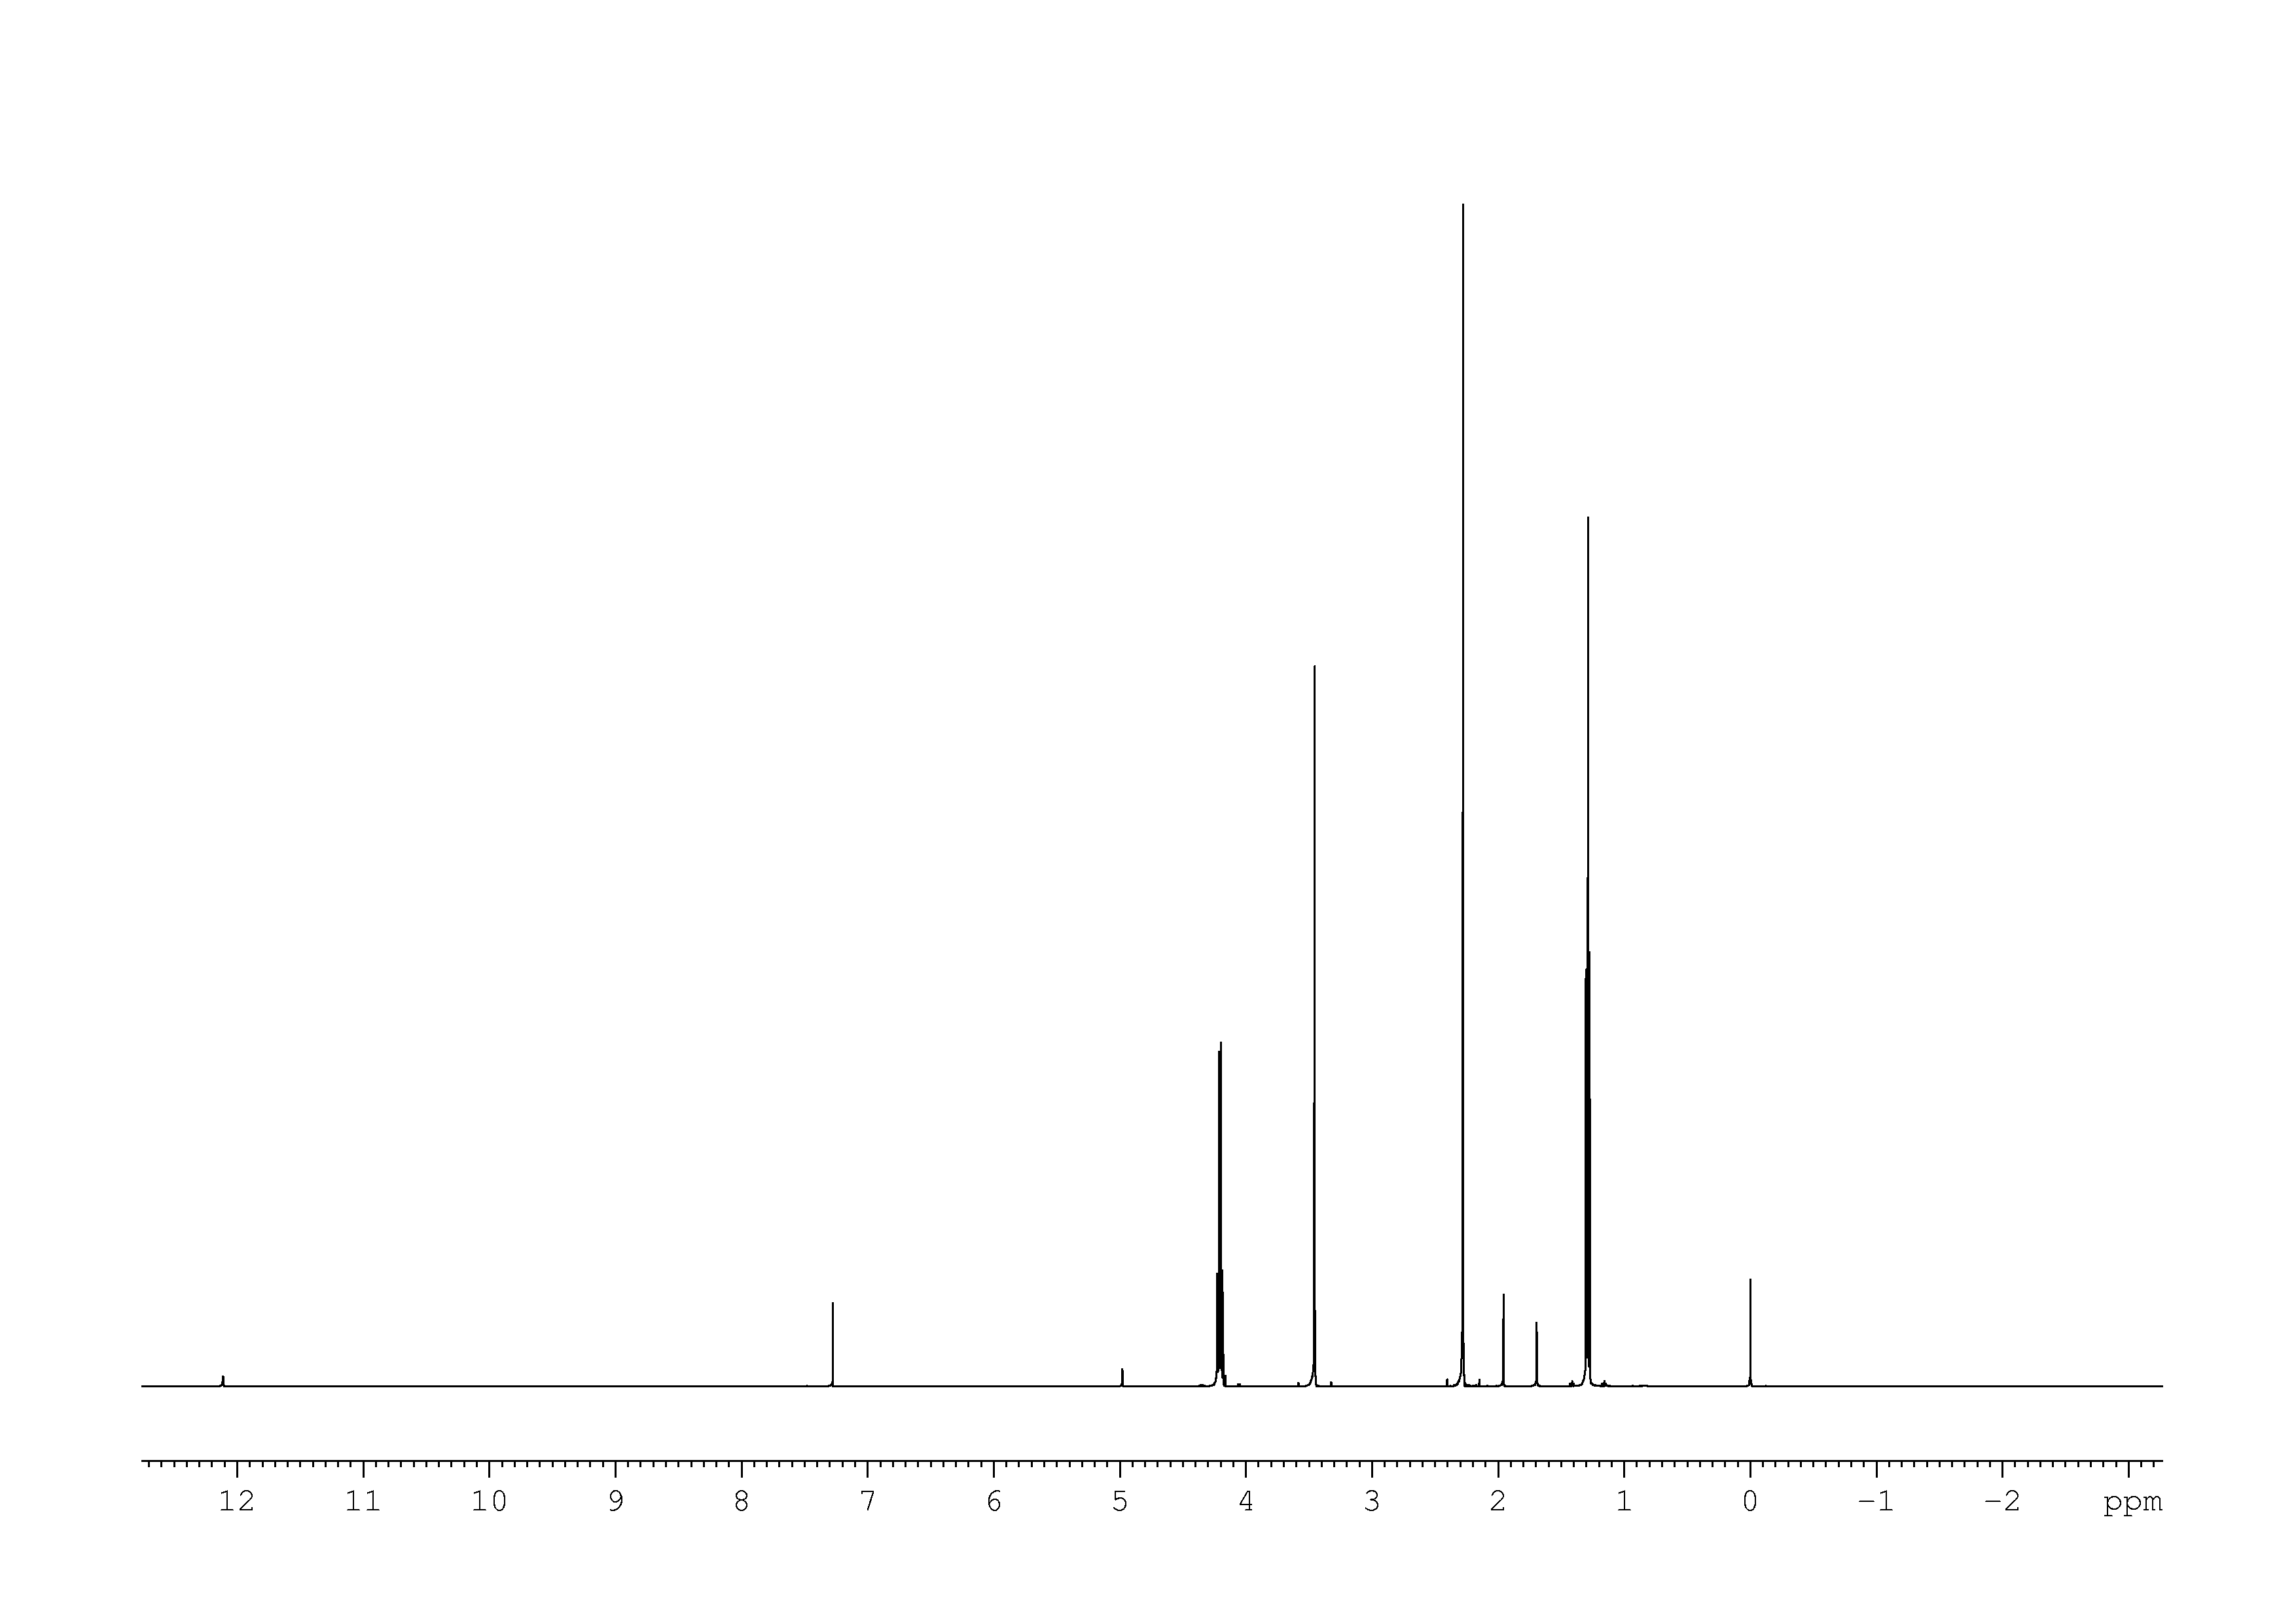 1D 1H, n/a spectrum for Ethyl acetoacetate